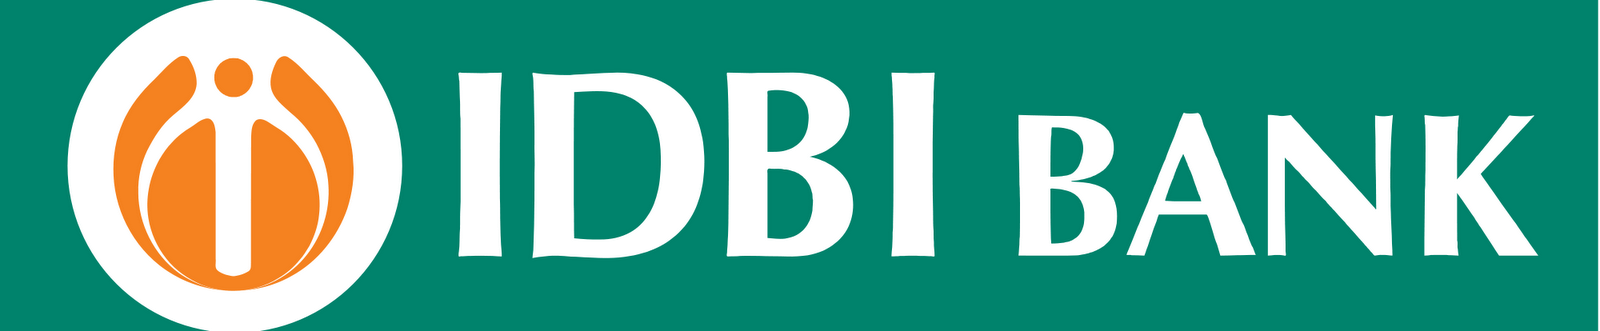 Achiievers supported bank - IDBI